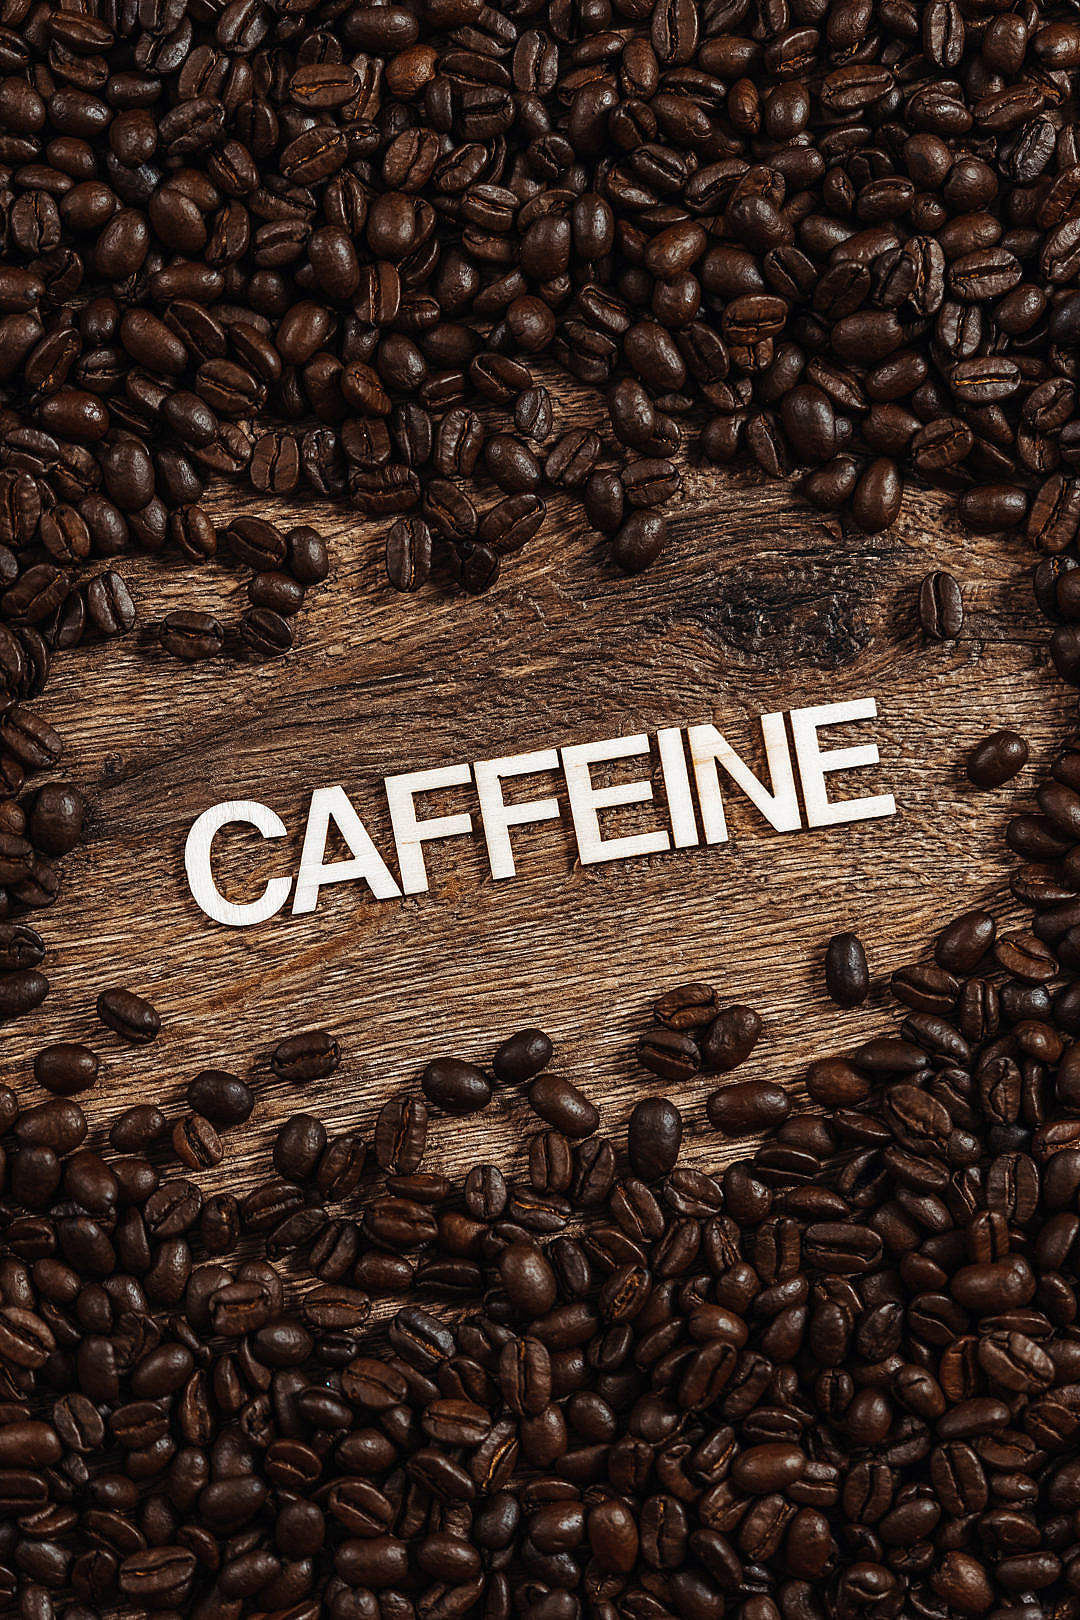 Download How Much Cаffeine Is In a Coffee Bean FREE Stock Photo